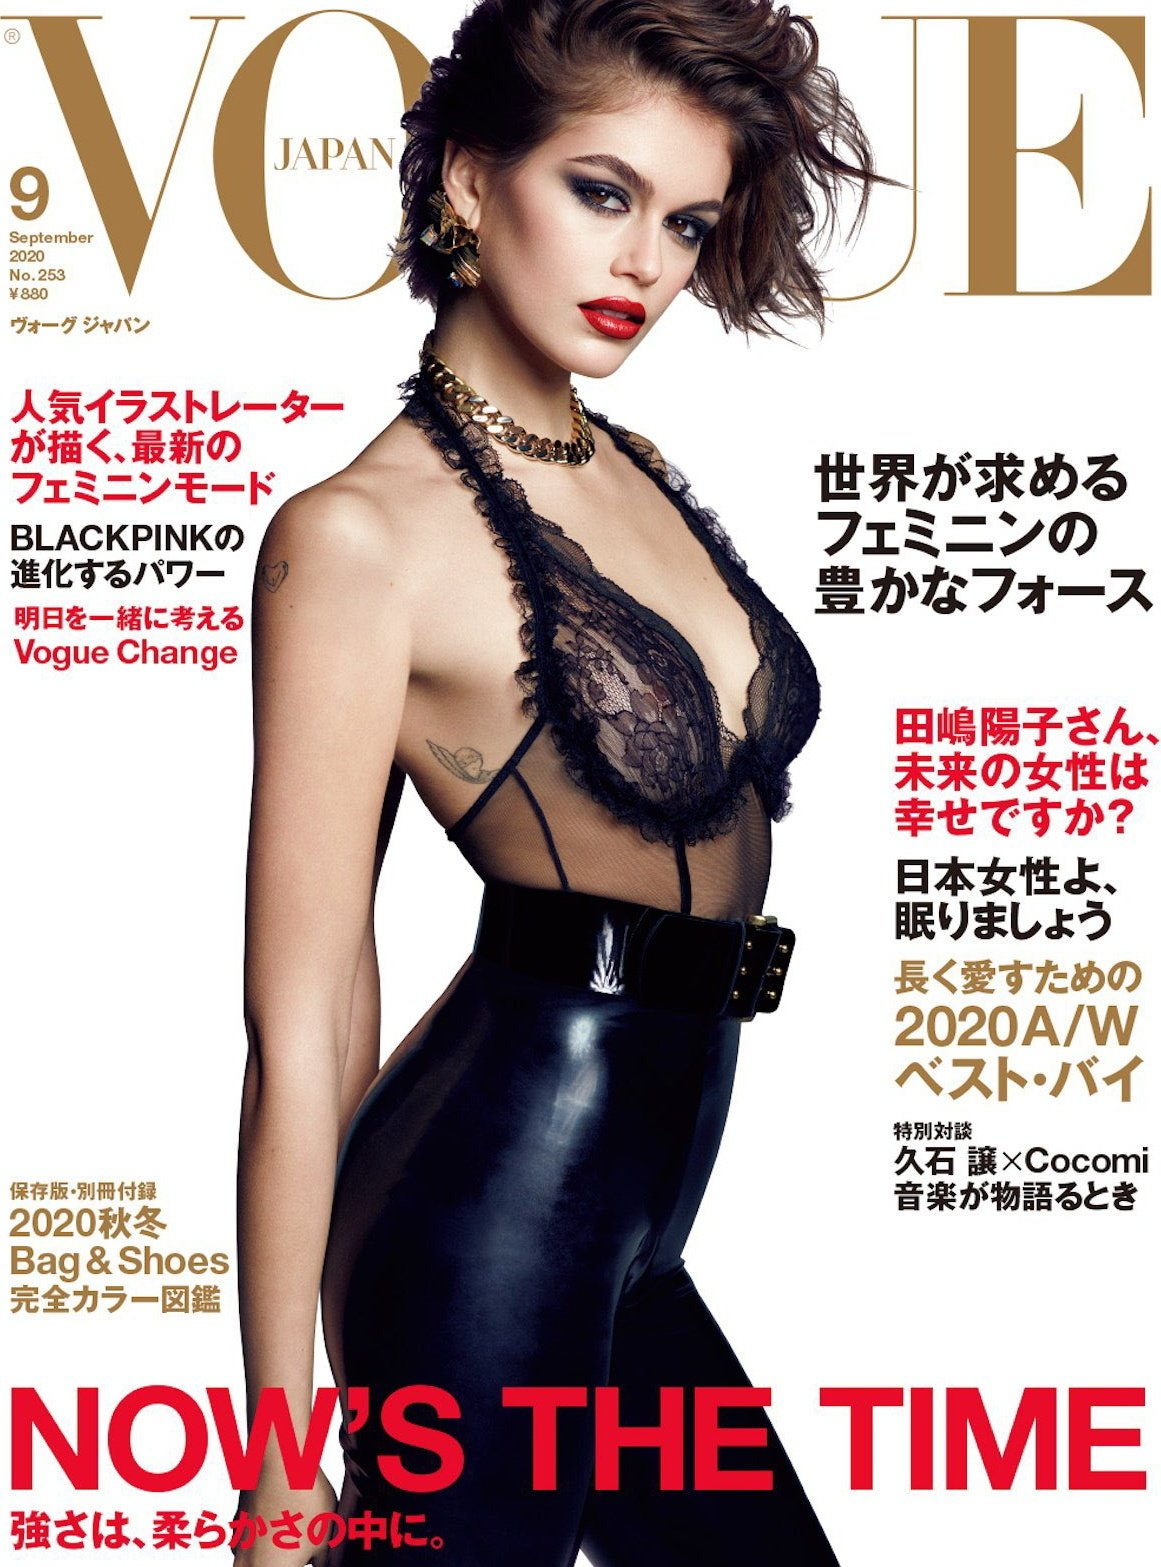 Kaia Gerber is the Cover Girl of Vogue Japan September 2020 Issu